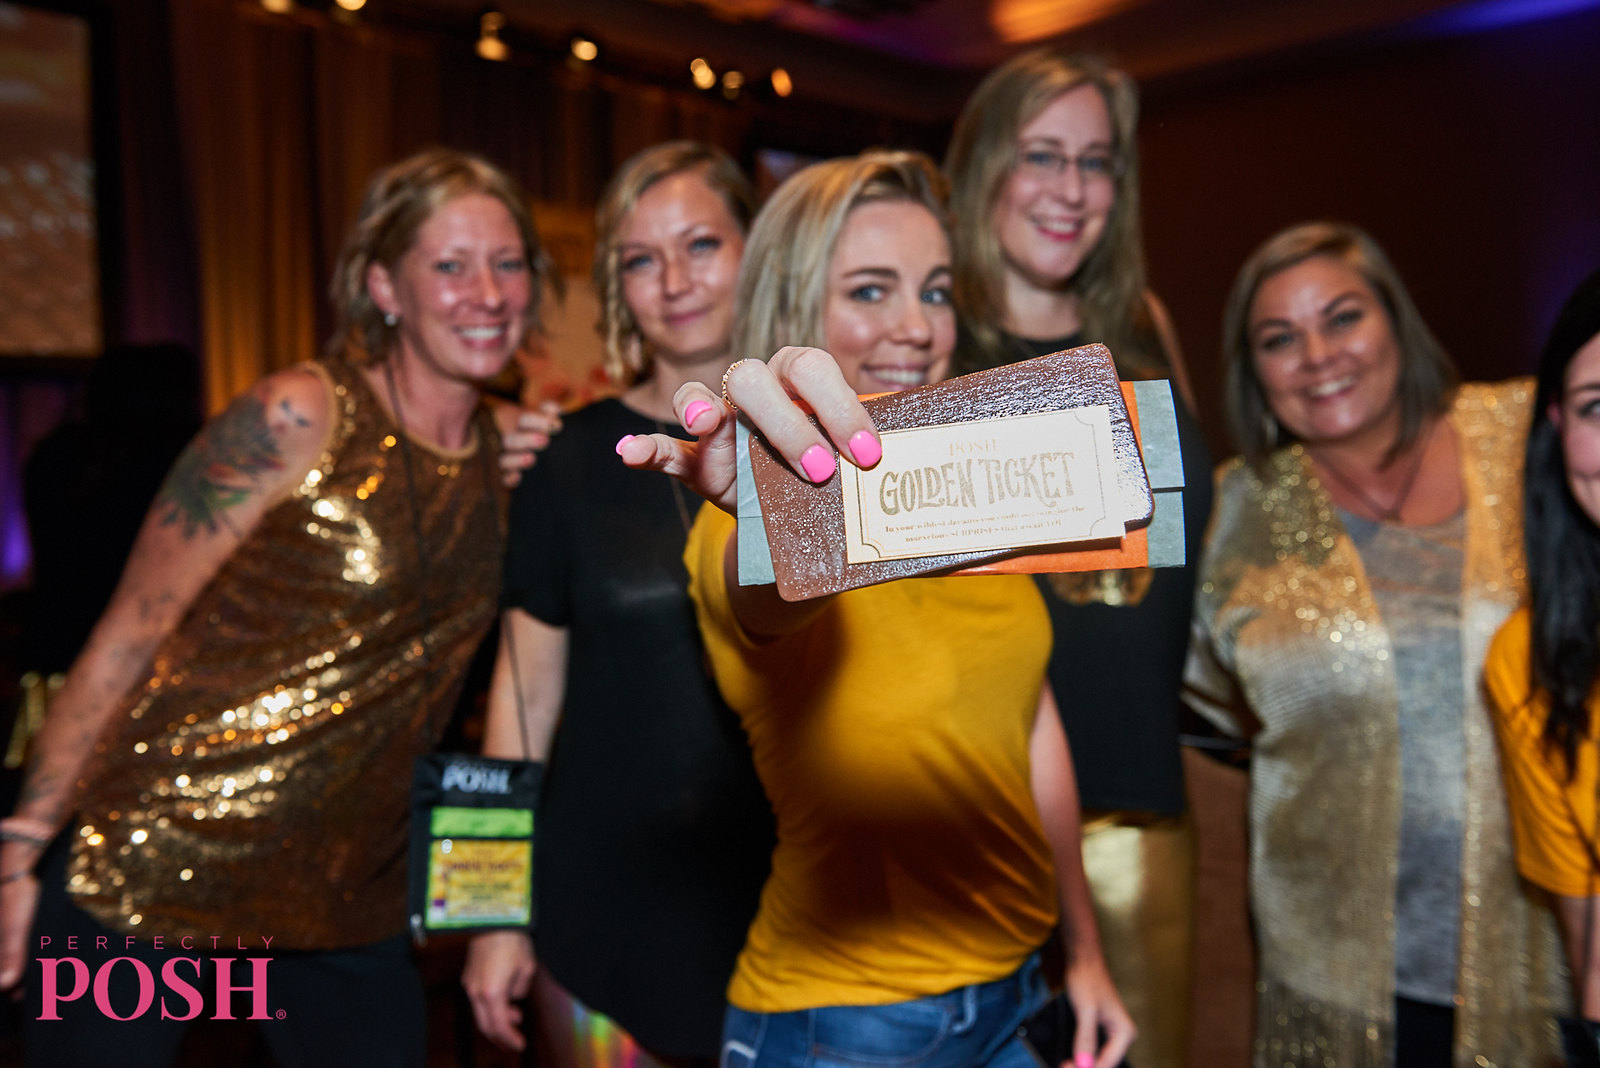 Perfectly Posh Influencer leaders holding golden ticket at UnCon Leadership 2019